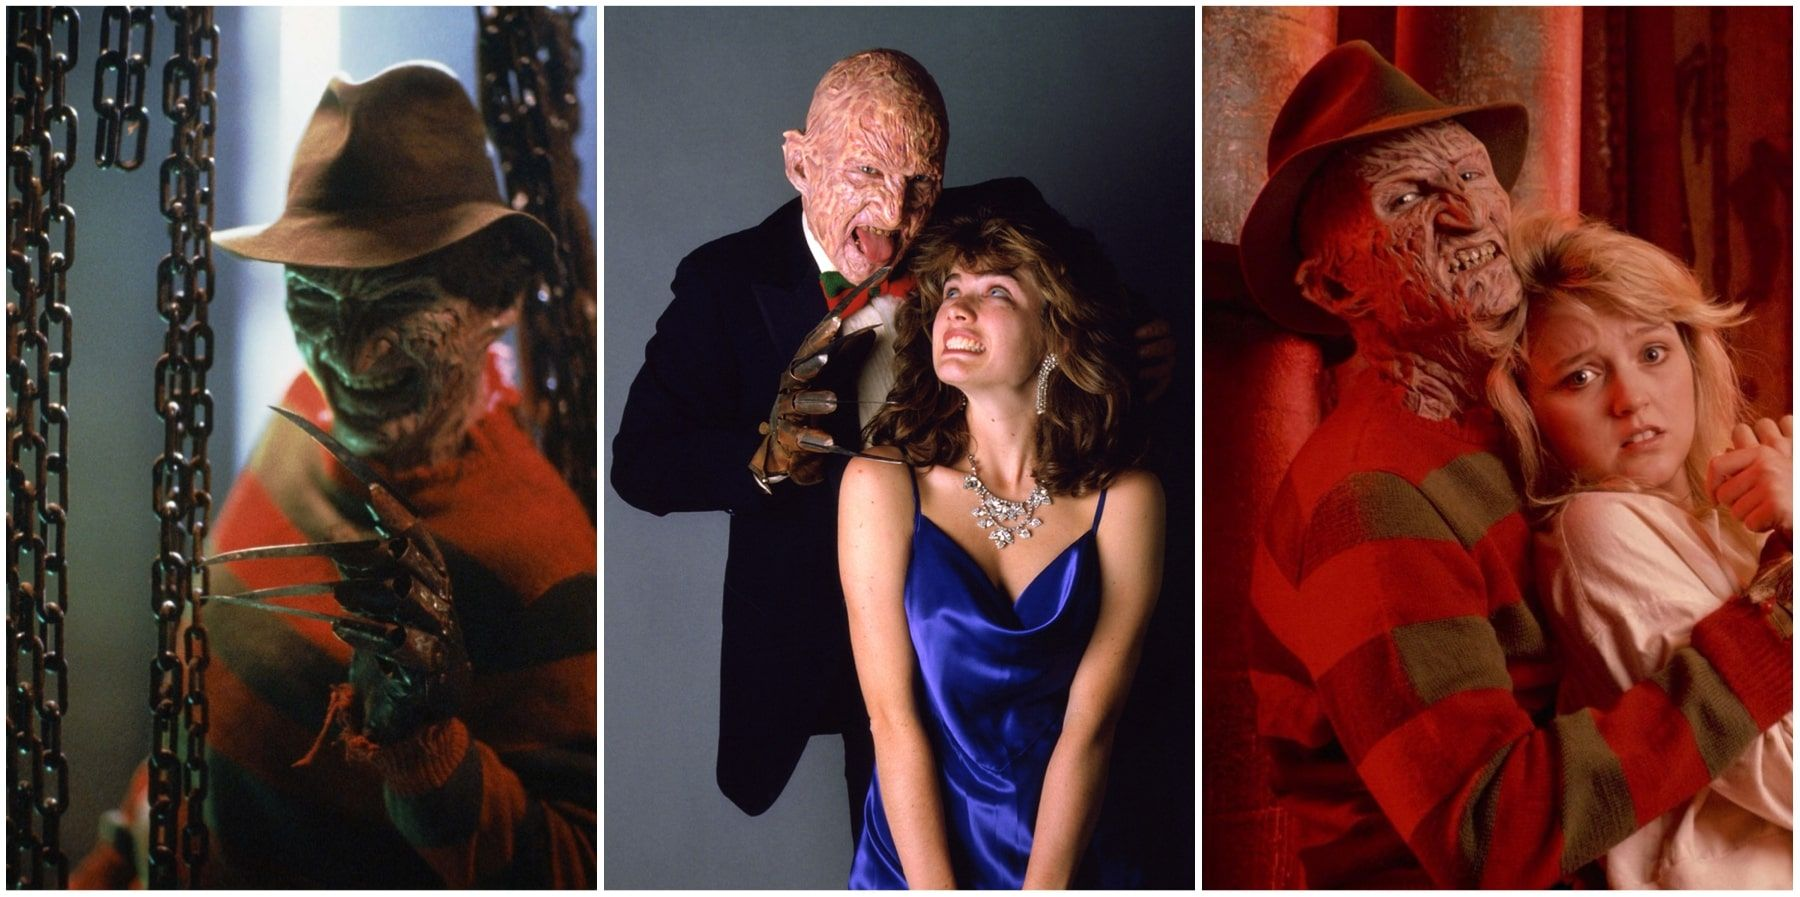 Nightmare On Elm St Quotes: Freddy Krueger's 10 Most Terrifying Quotes From The A